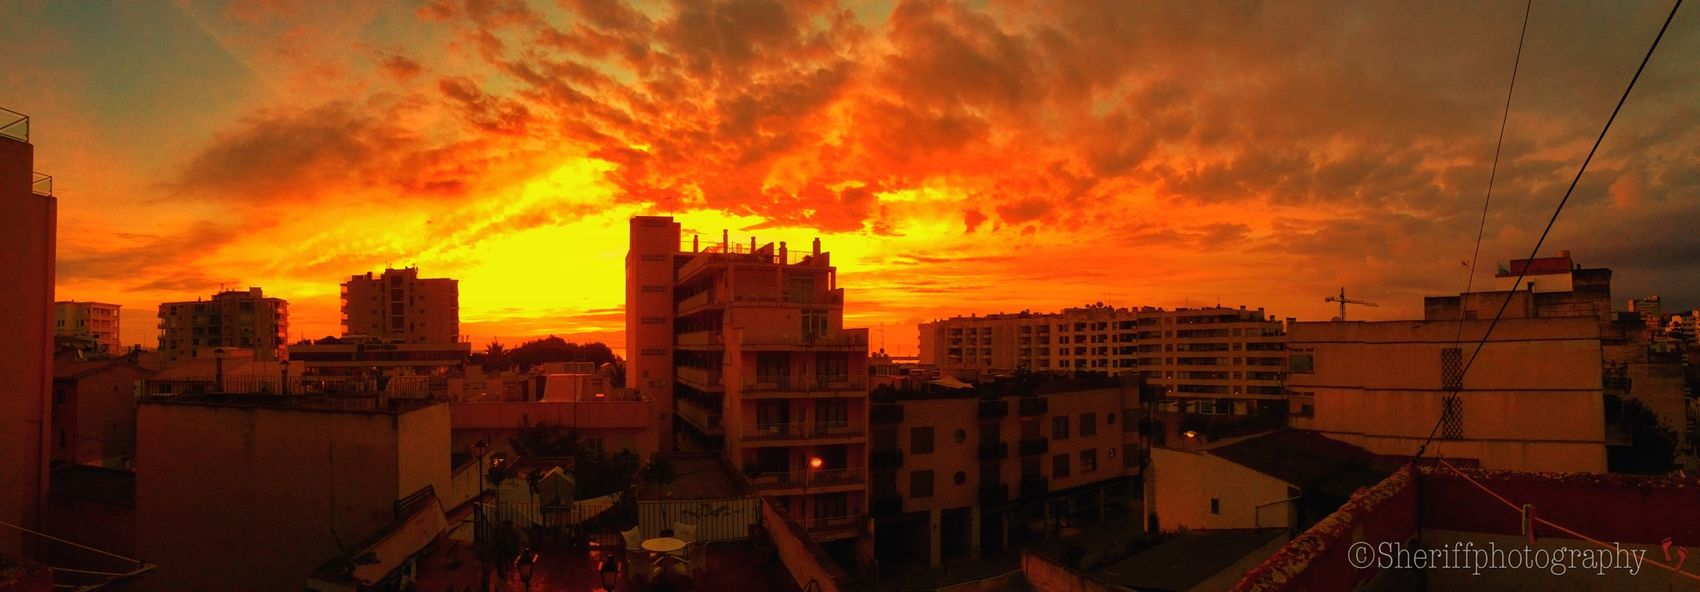 EyeEm Best Edits Tadaa Community Palma Street Photography Streetphotography Sky Collection Sky Is On Fire Skylover Panoramic Landscape Panoramic Photography